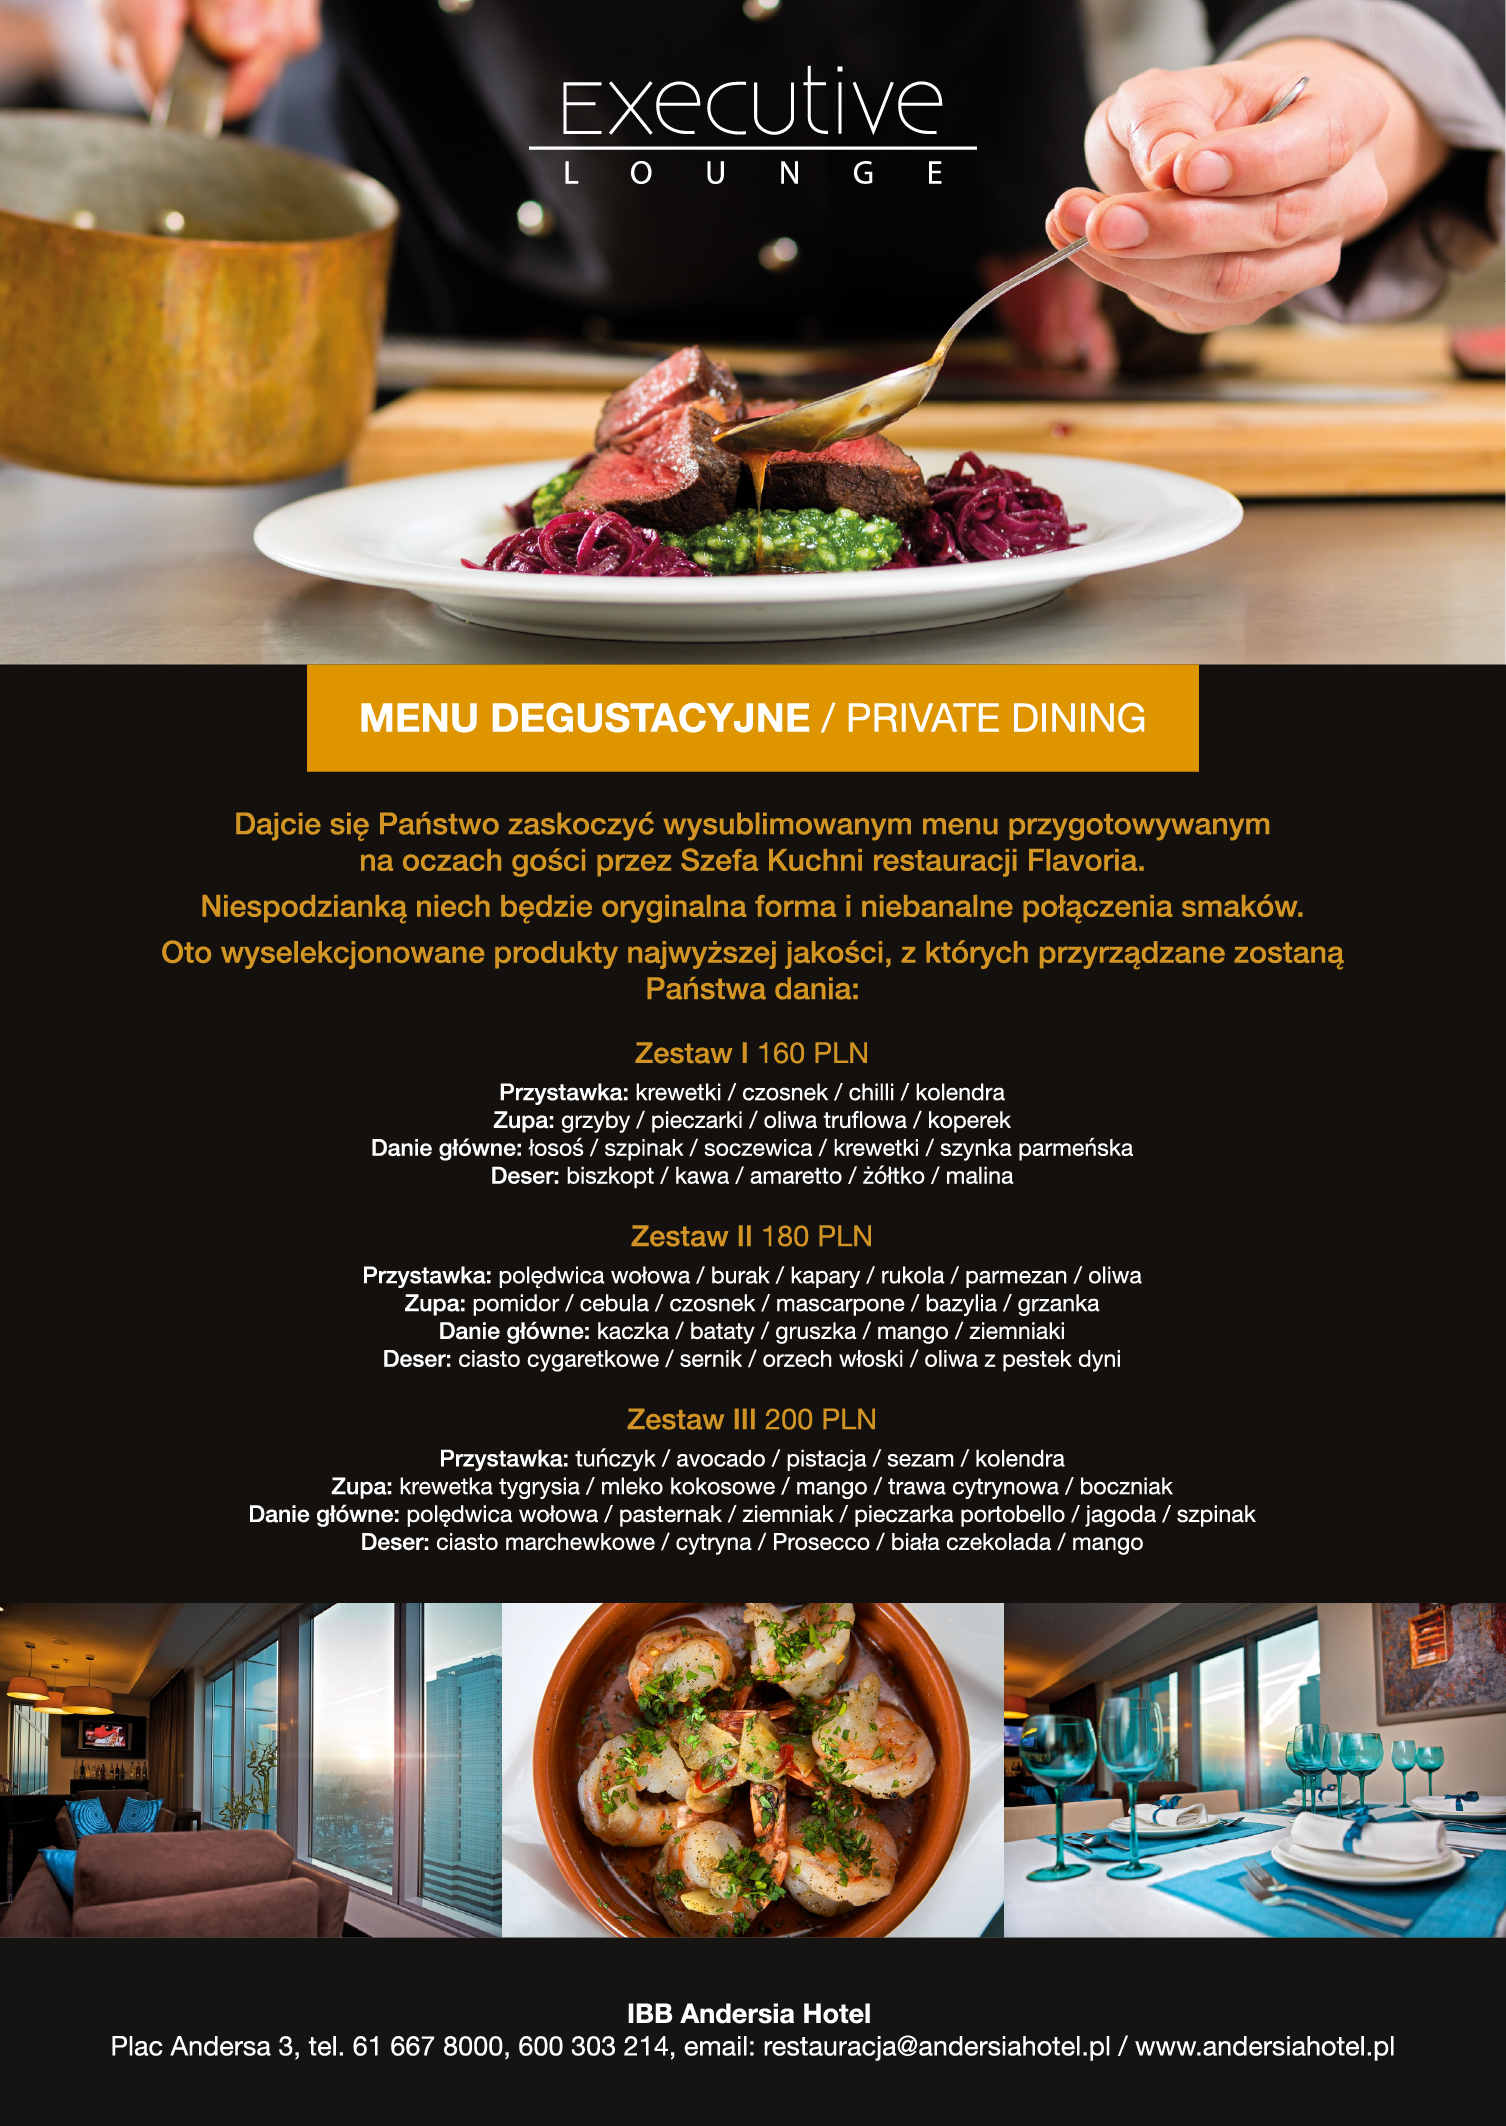 Private Dining Na 9 Pietrze W Hotelu Ibb Andersia Private Dining Food Beef